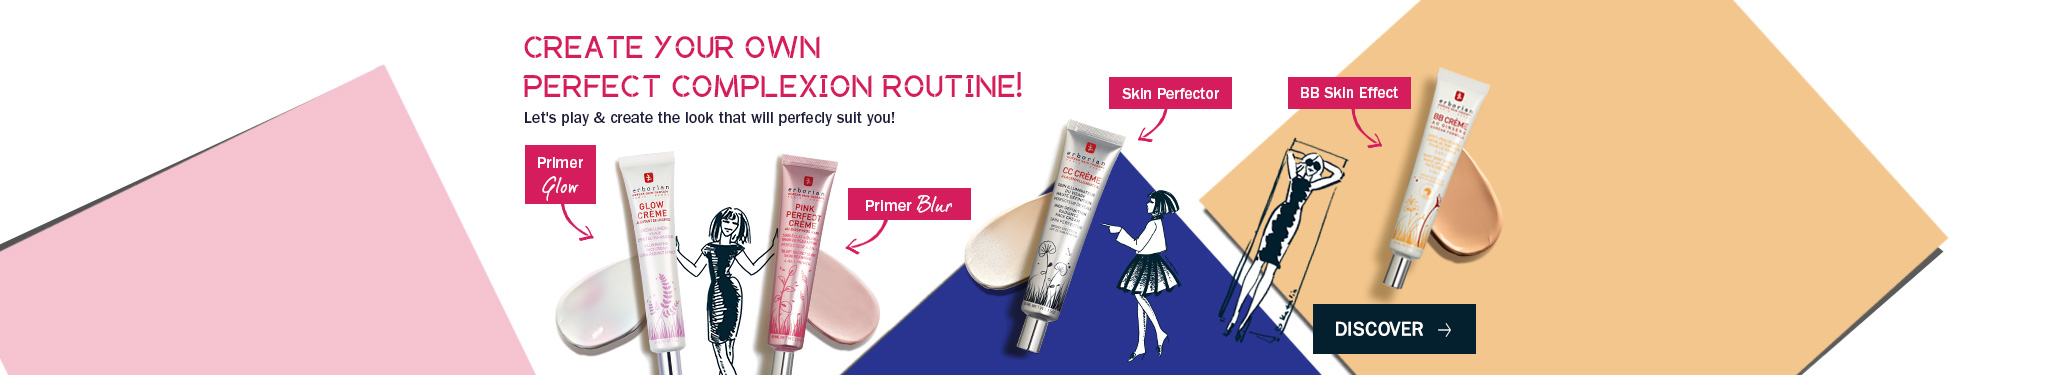 discover our Iconic routine